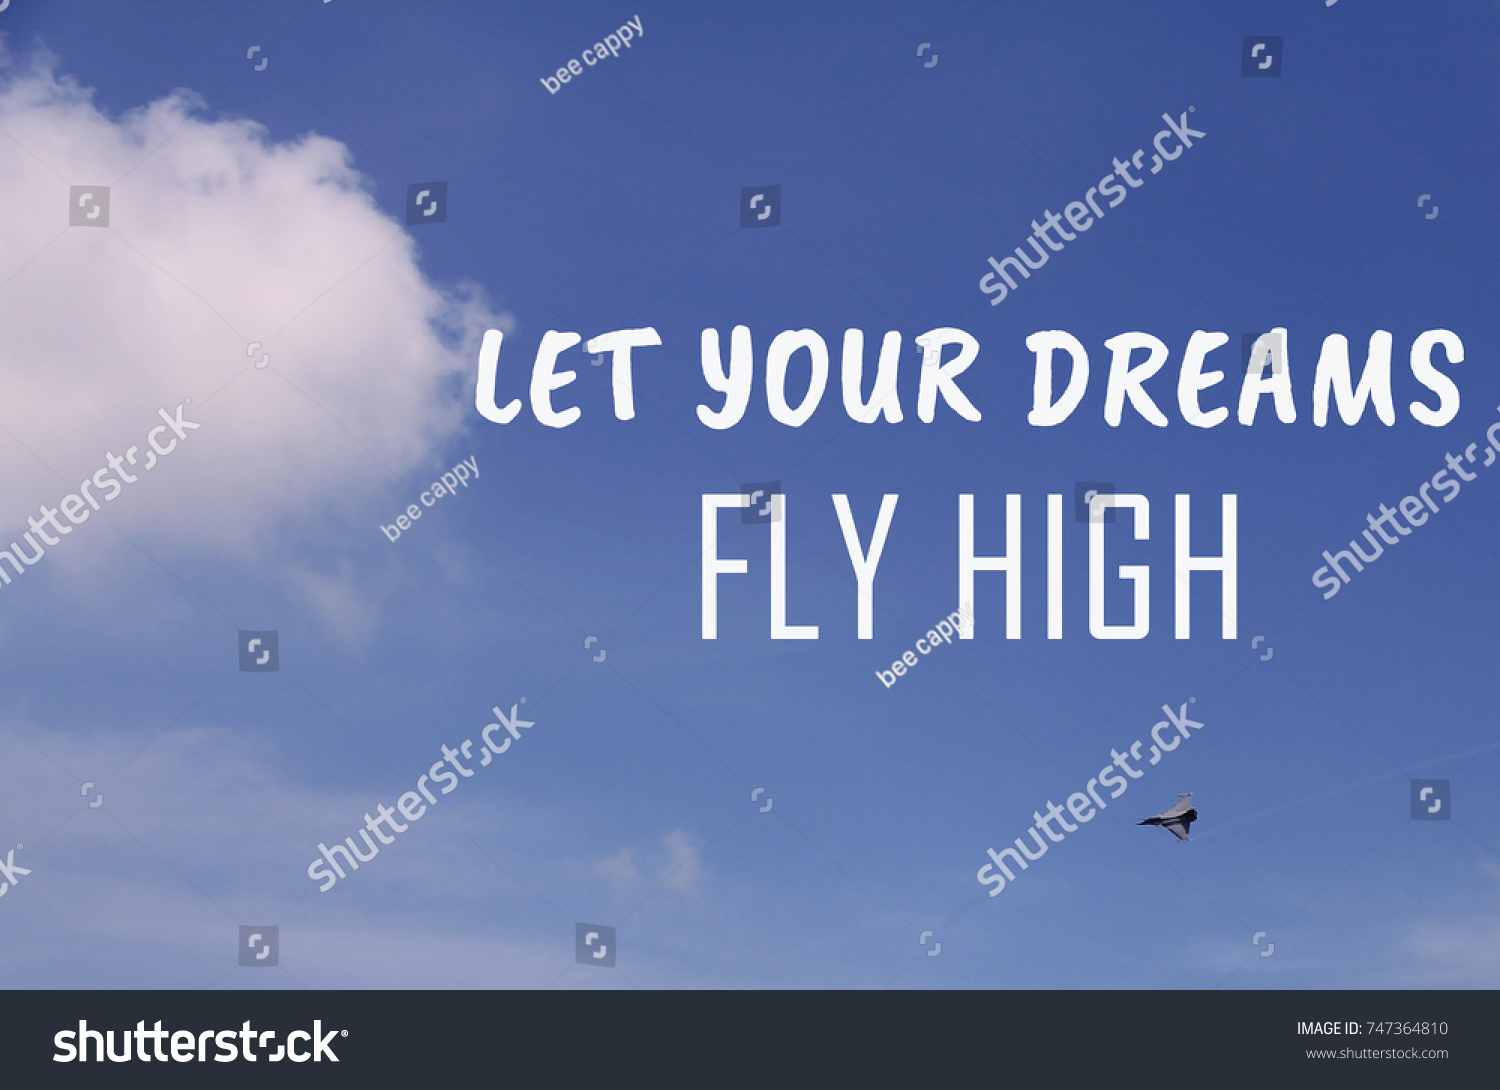 Life Inspiring Quotes Life Inspirational Quotes Let Your Dreams Stock Photo 747364810